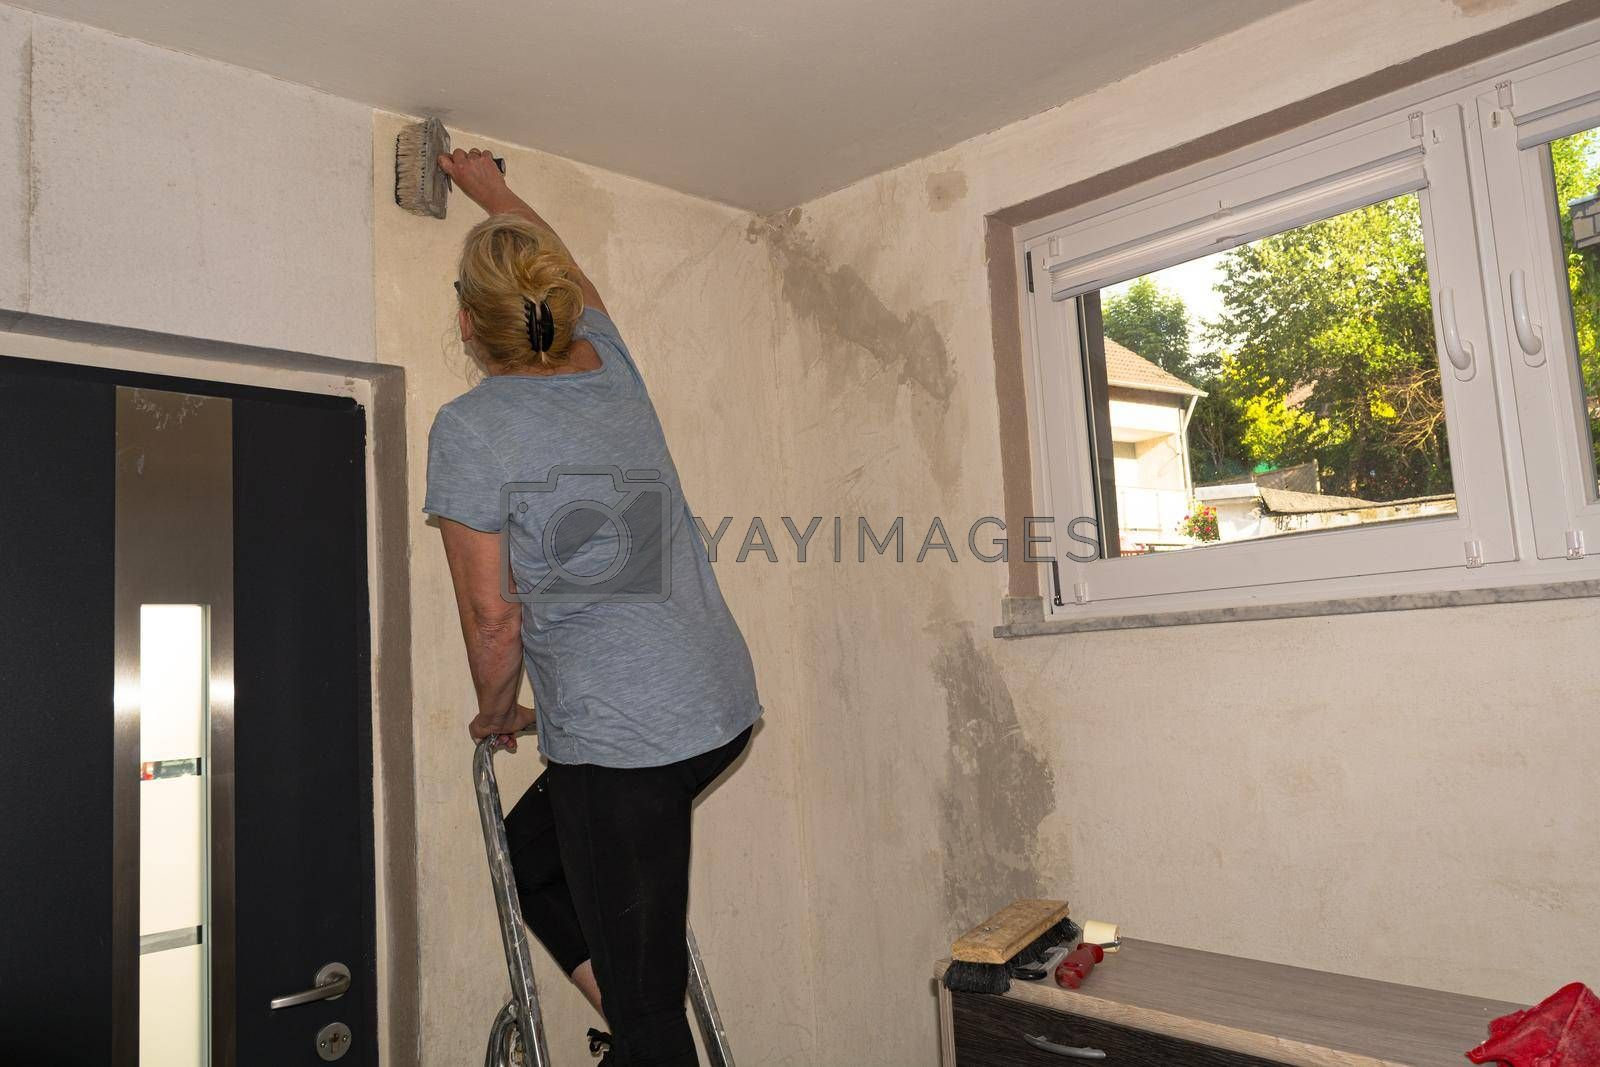 Royalty free image of Woman in casual clothes, rolls of wallpaper on a wall. by JFsPic